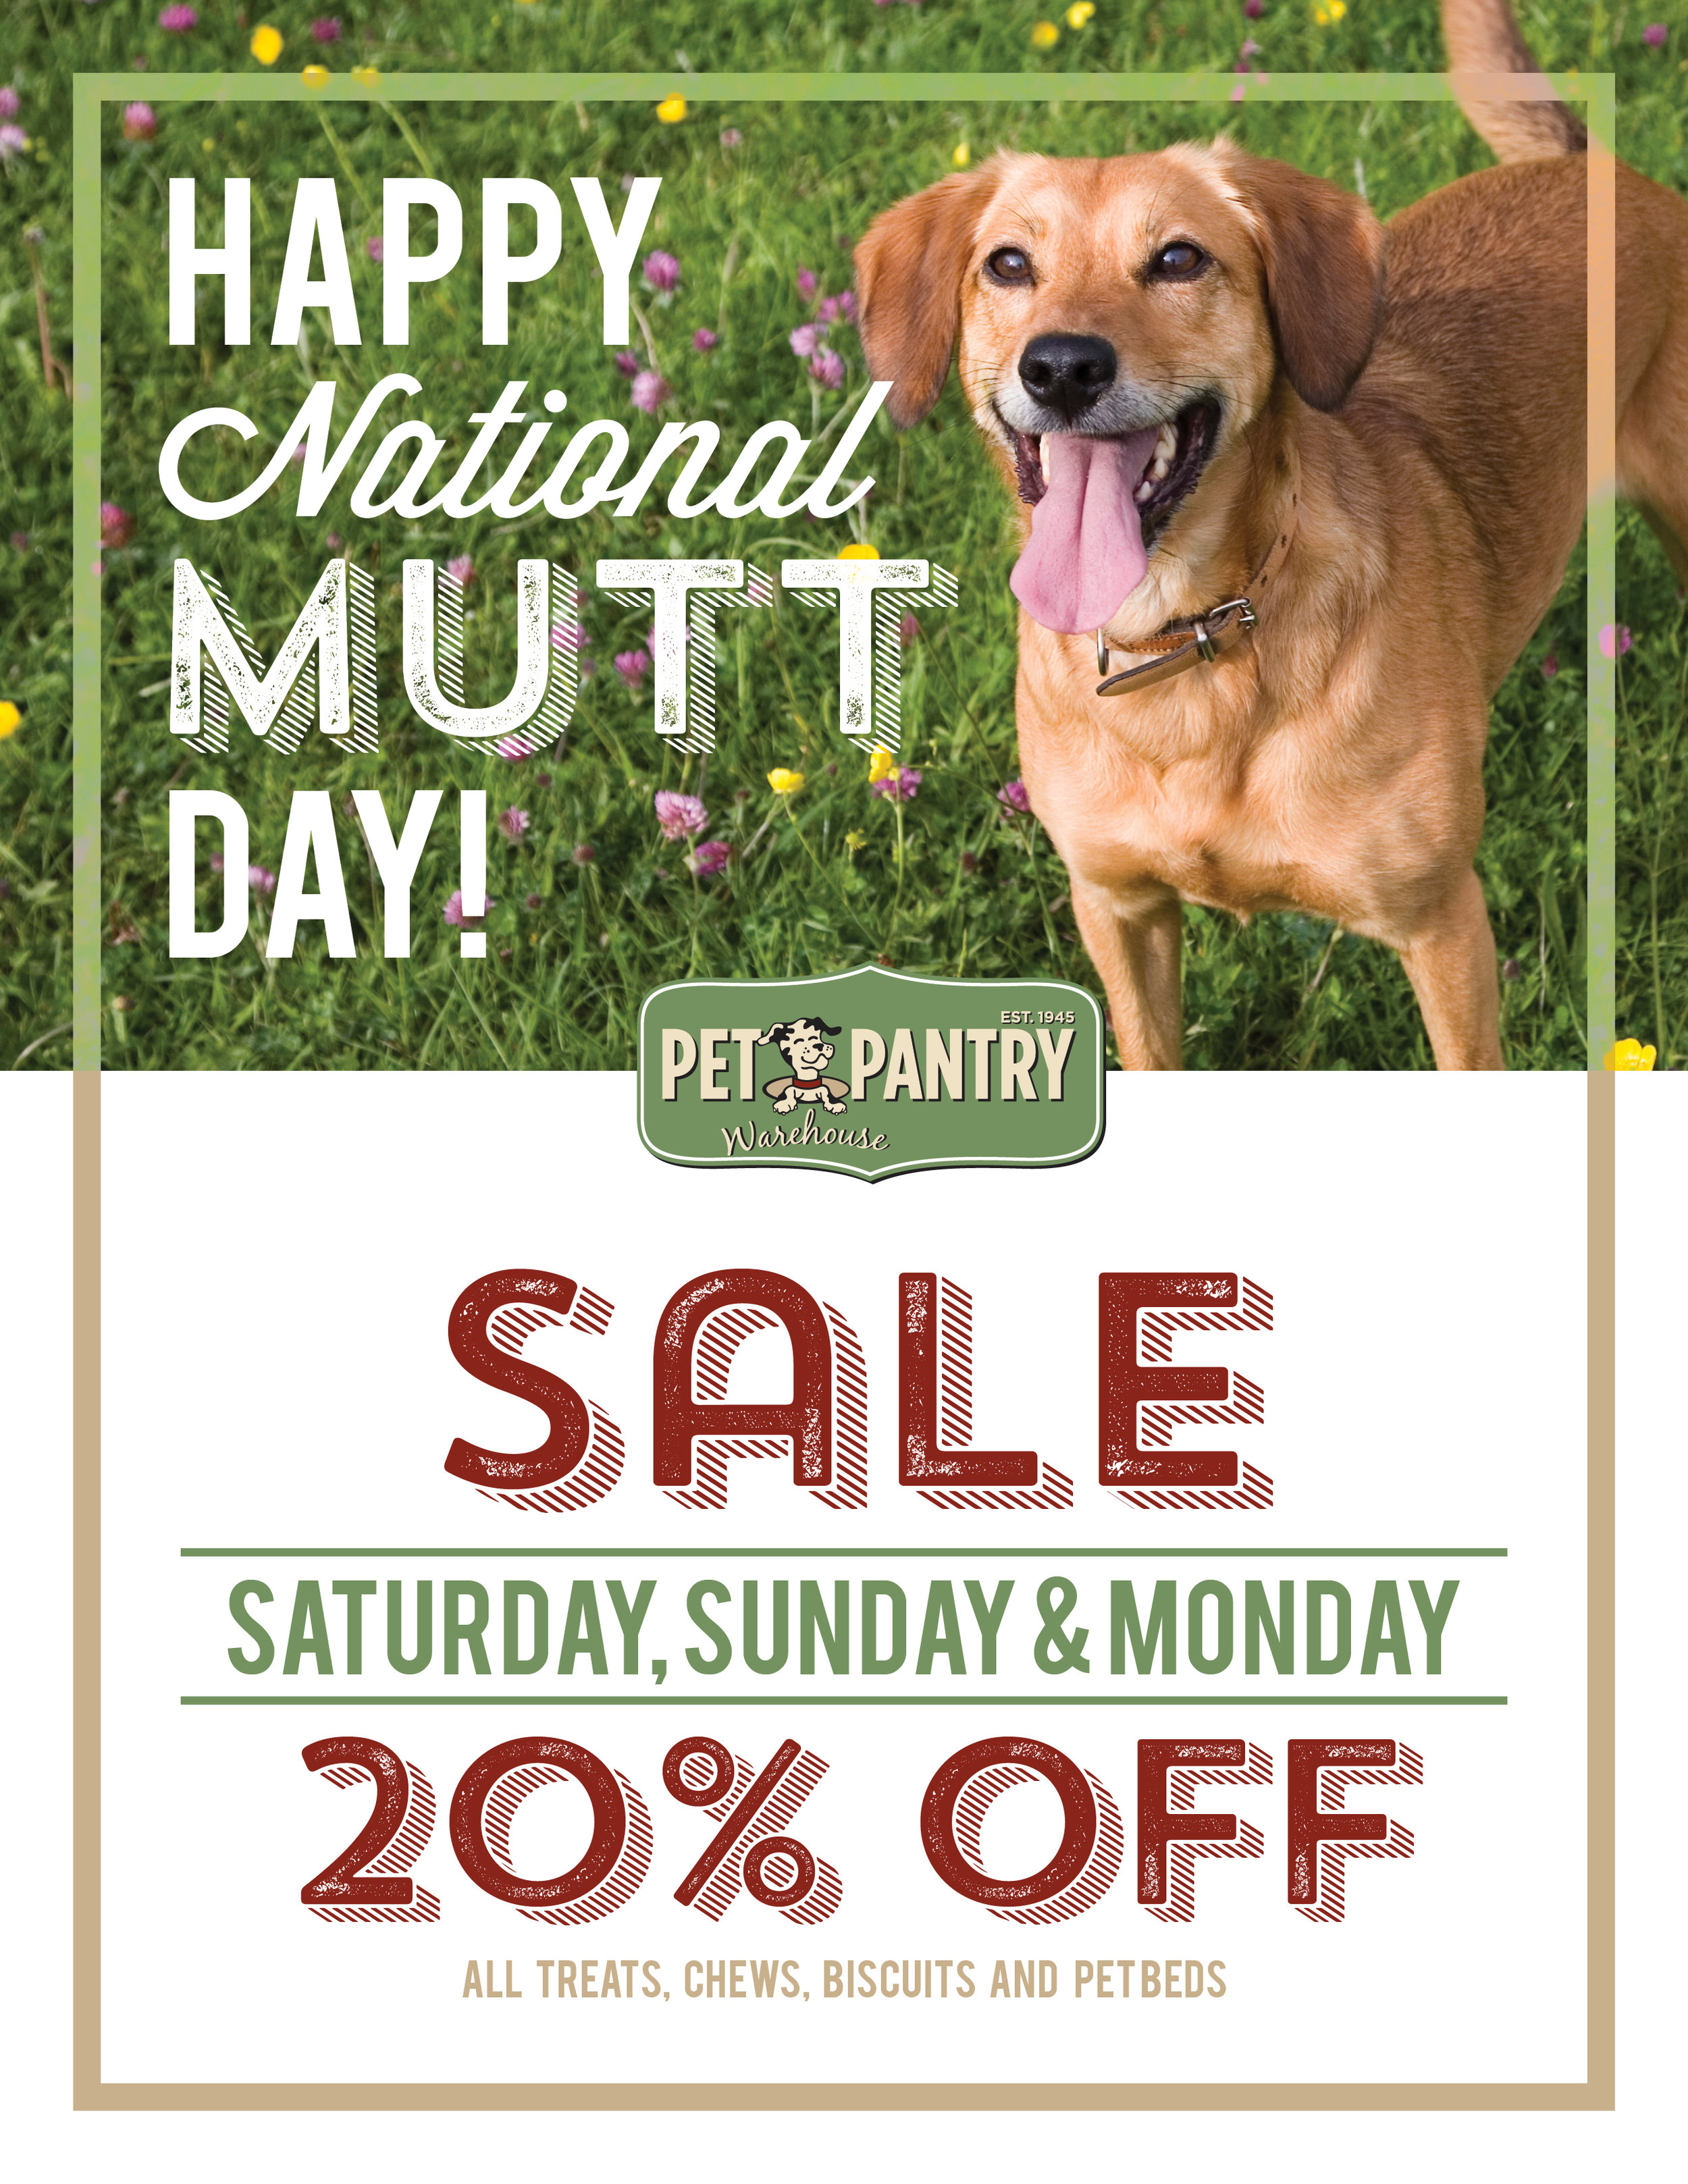 PPW_NationalMuttDay.jpg